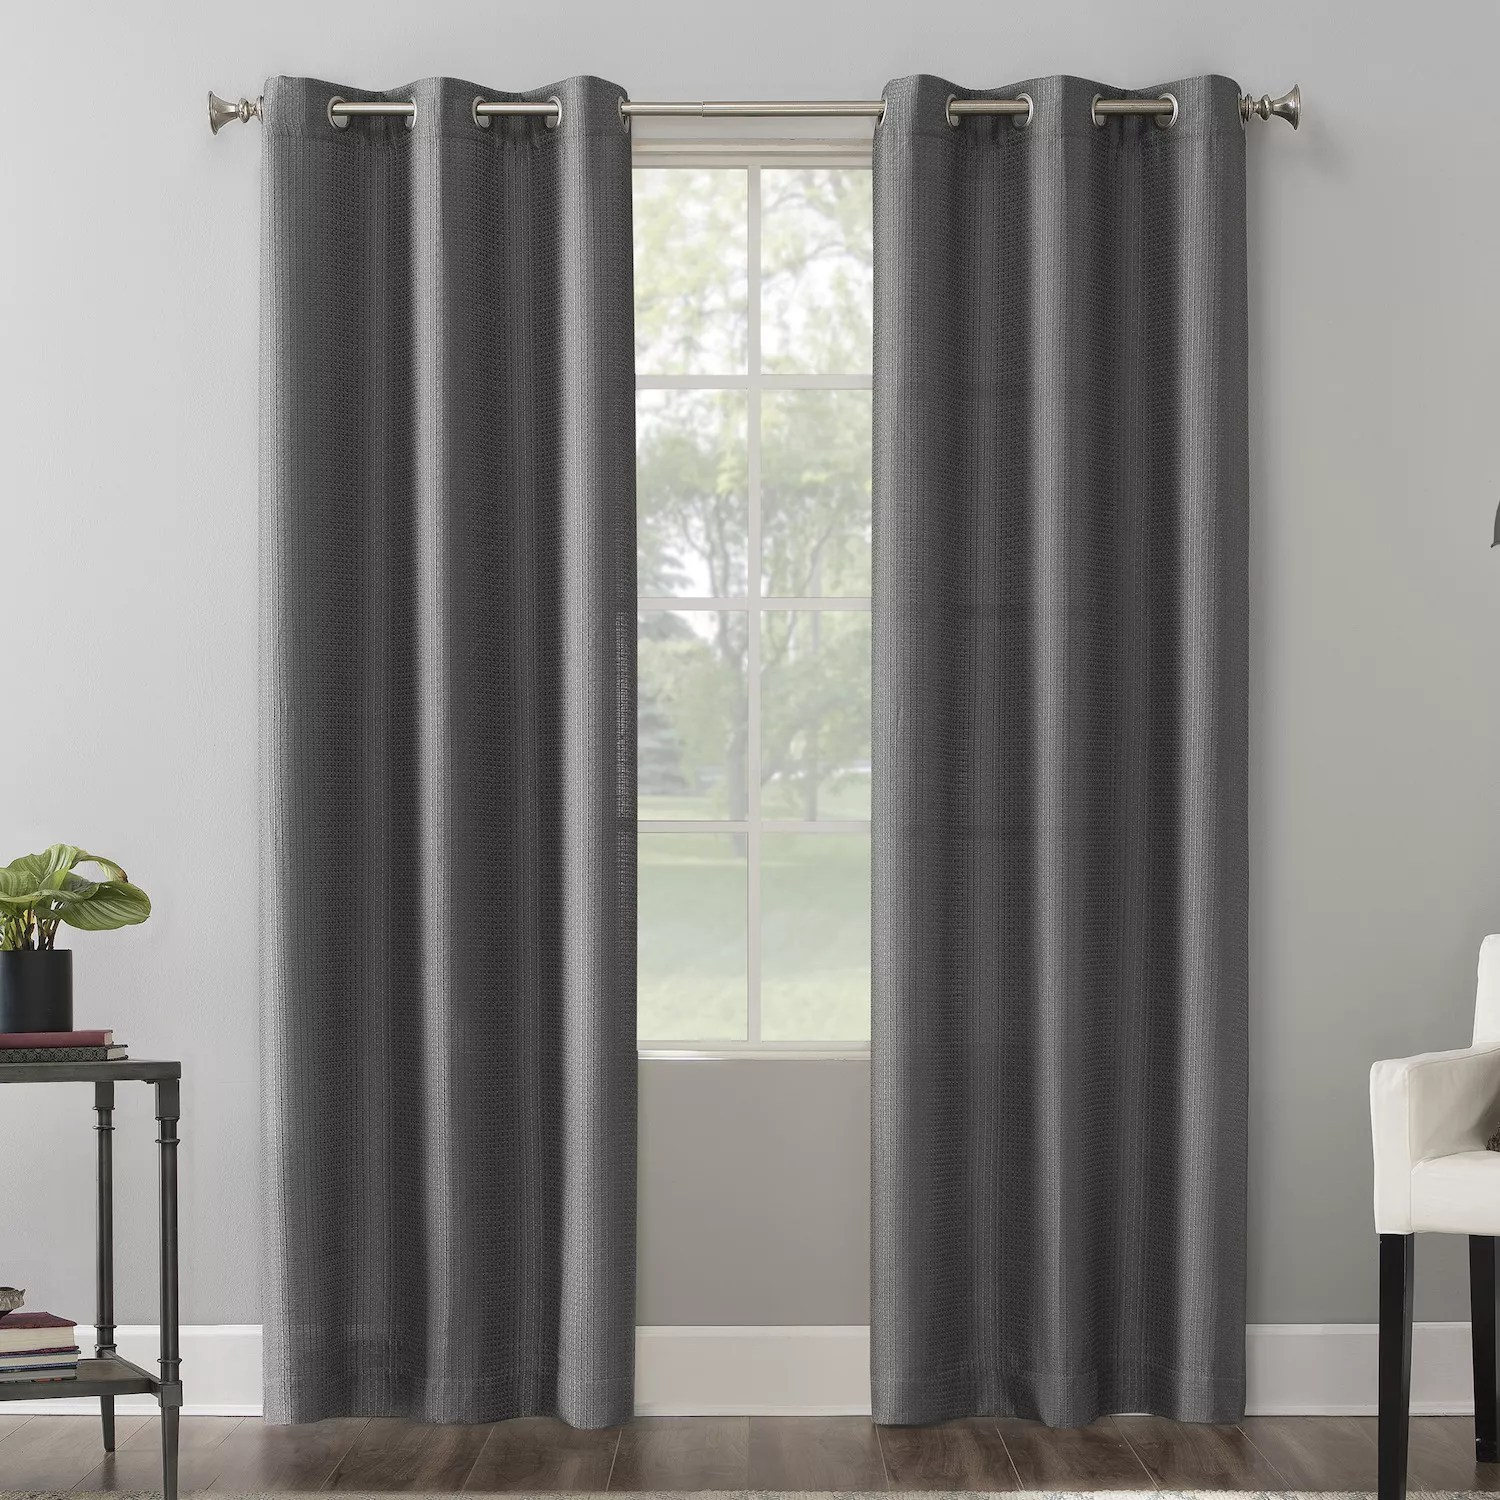 the big one curtains drapes window